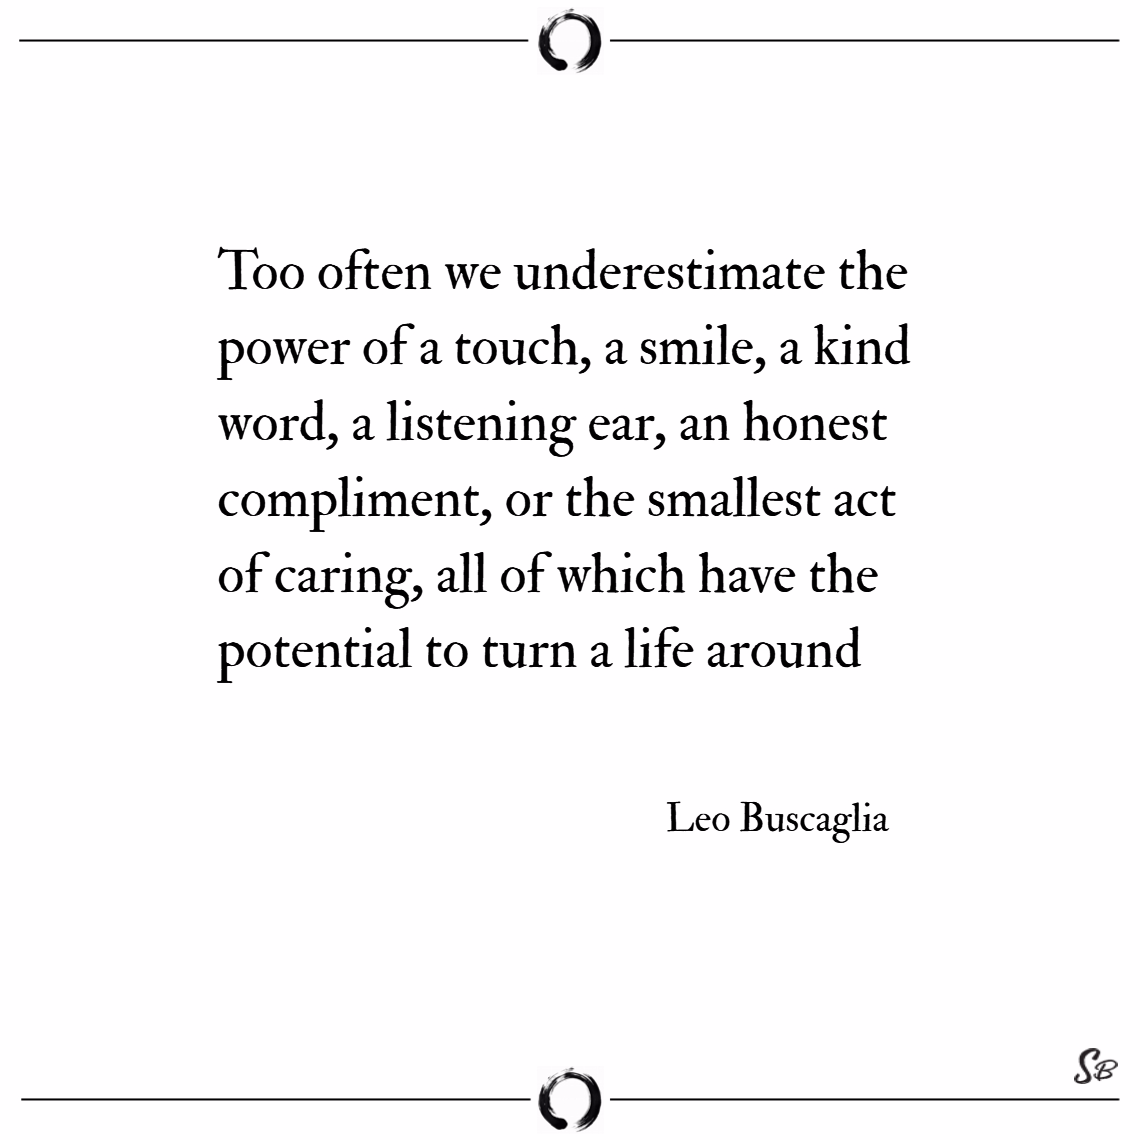 Too often we underestimate the power of a touch, a smile, a kind word – leo buscaglia